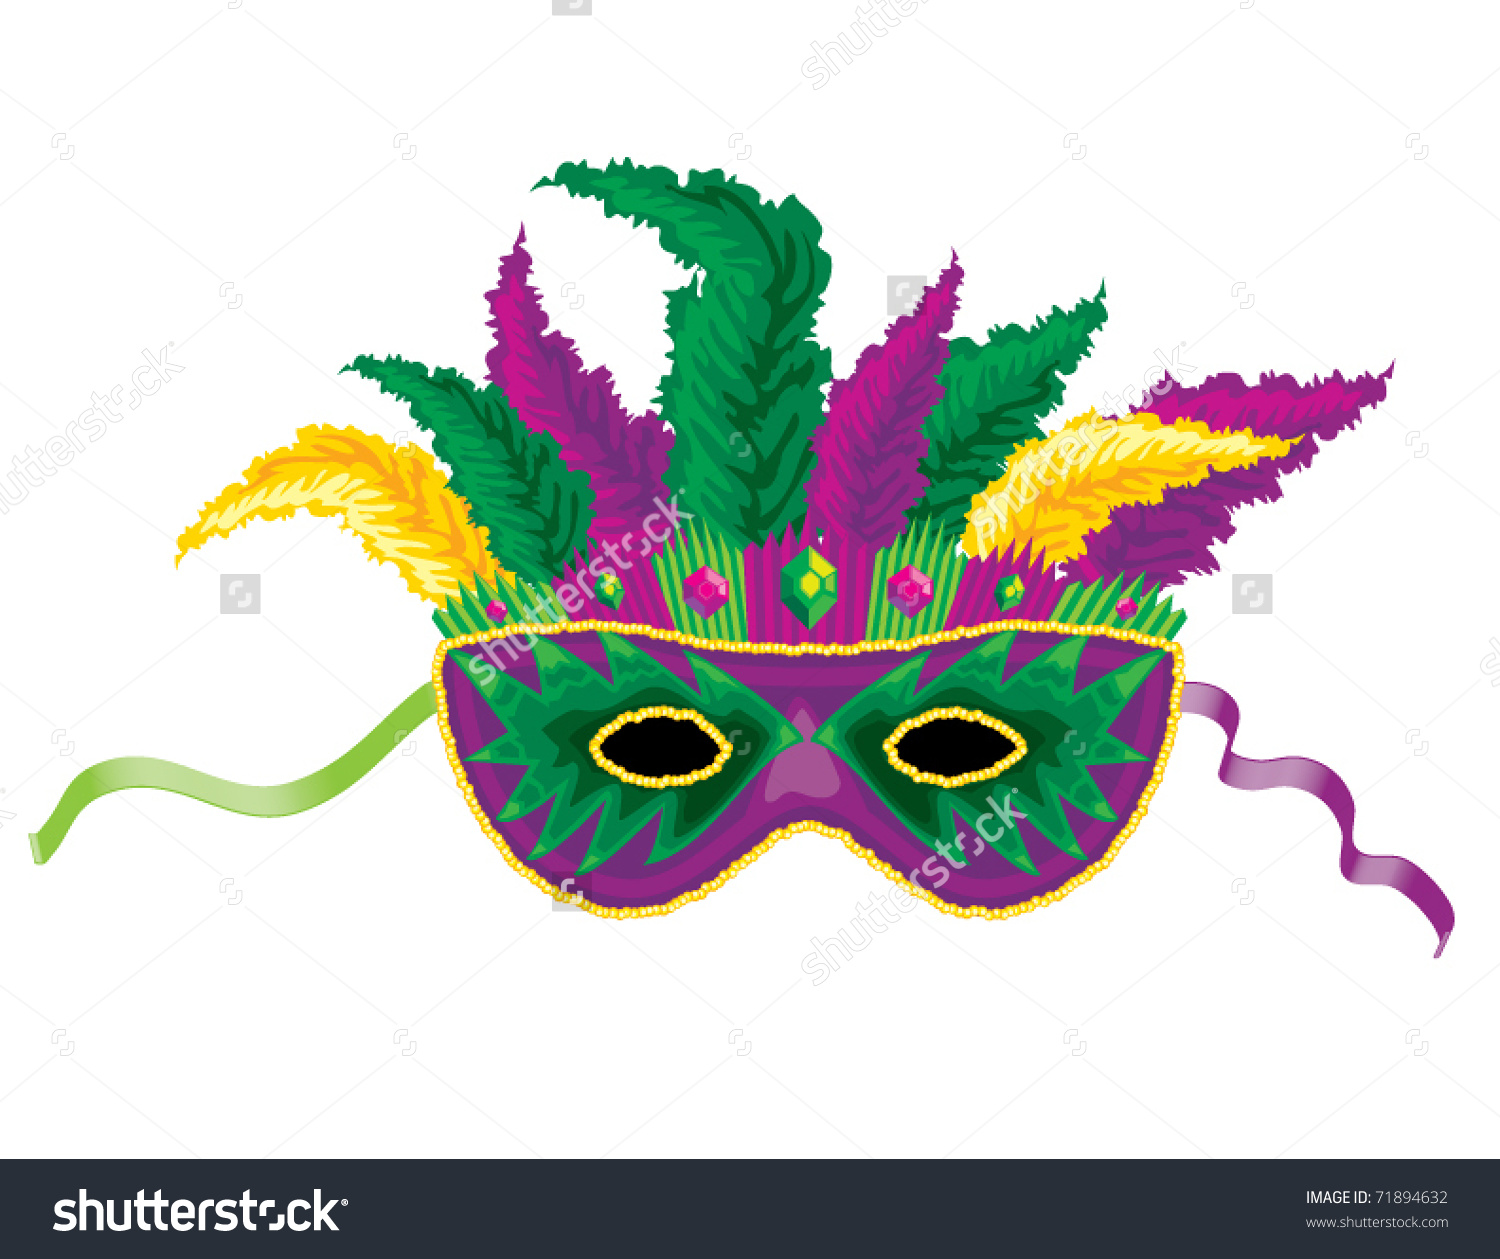 1500x1259 Stock Vector Mardi Gras Mask 71894632 Our Lady Star Of The Sea